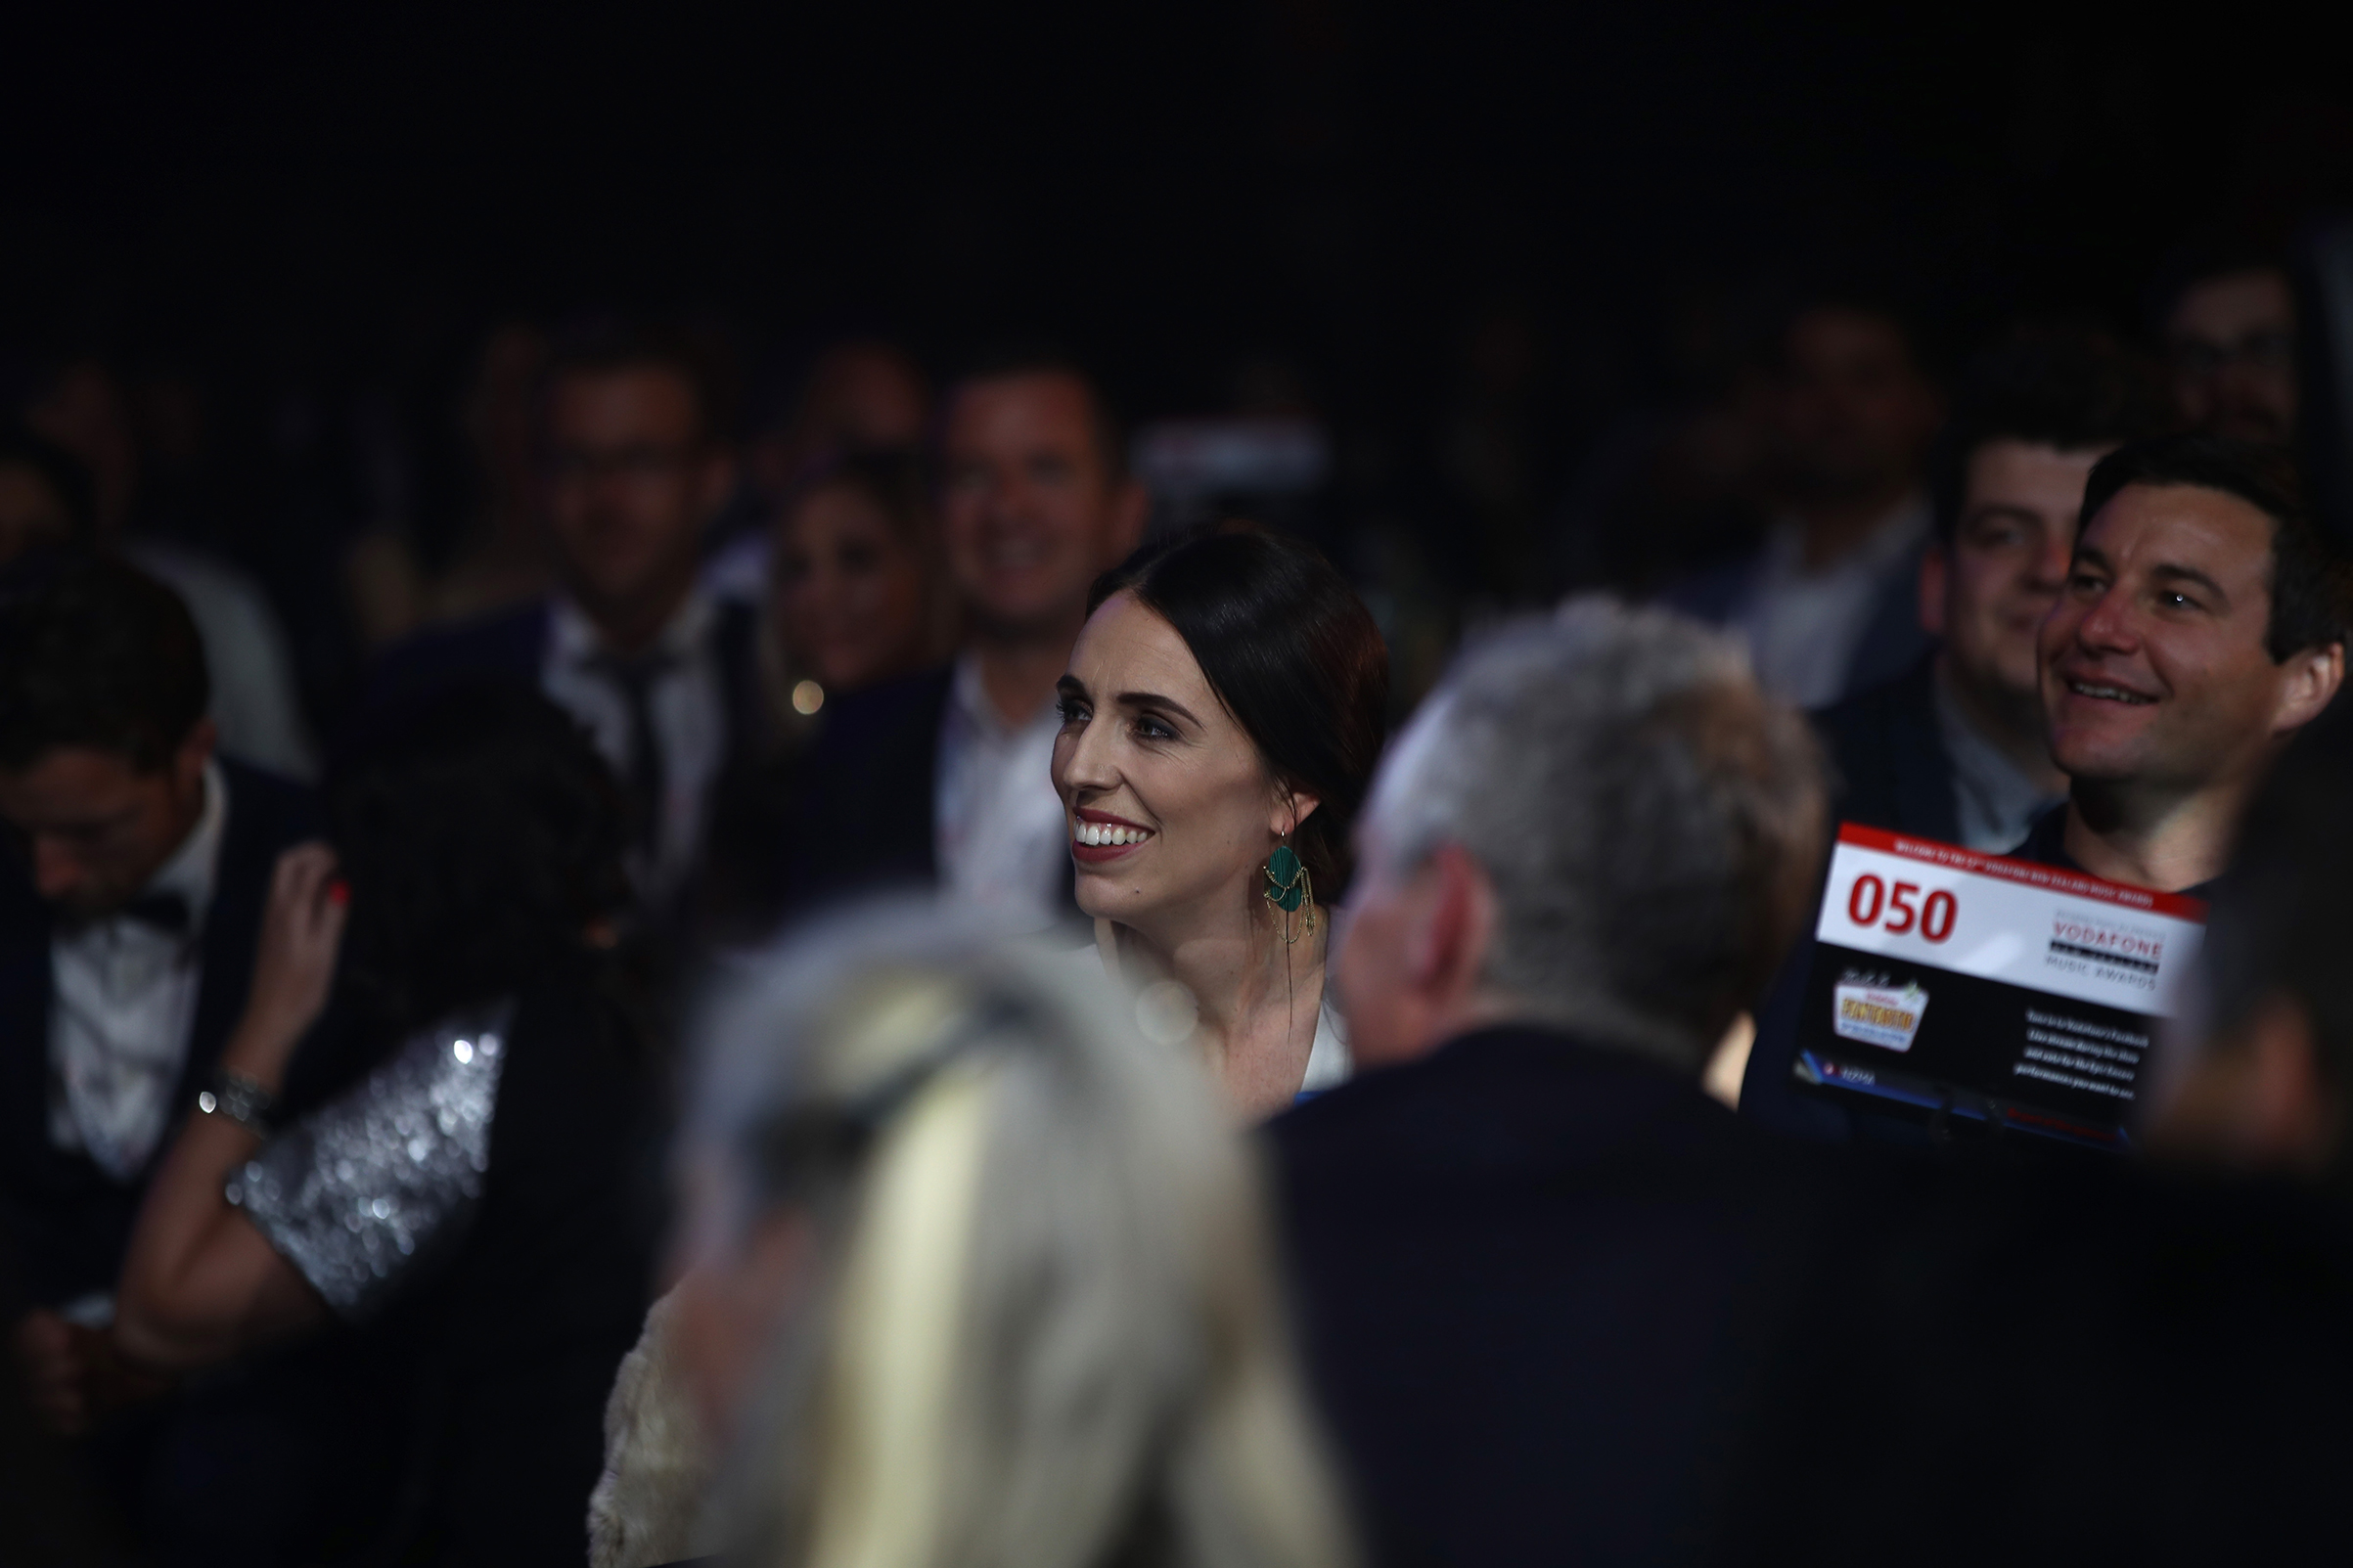 Prime Minister Jacinda Ardern attends an awards show in Auckland, New Zealand, on Nov. 16, 2017.